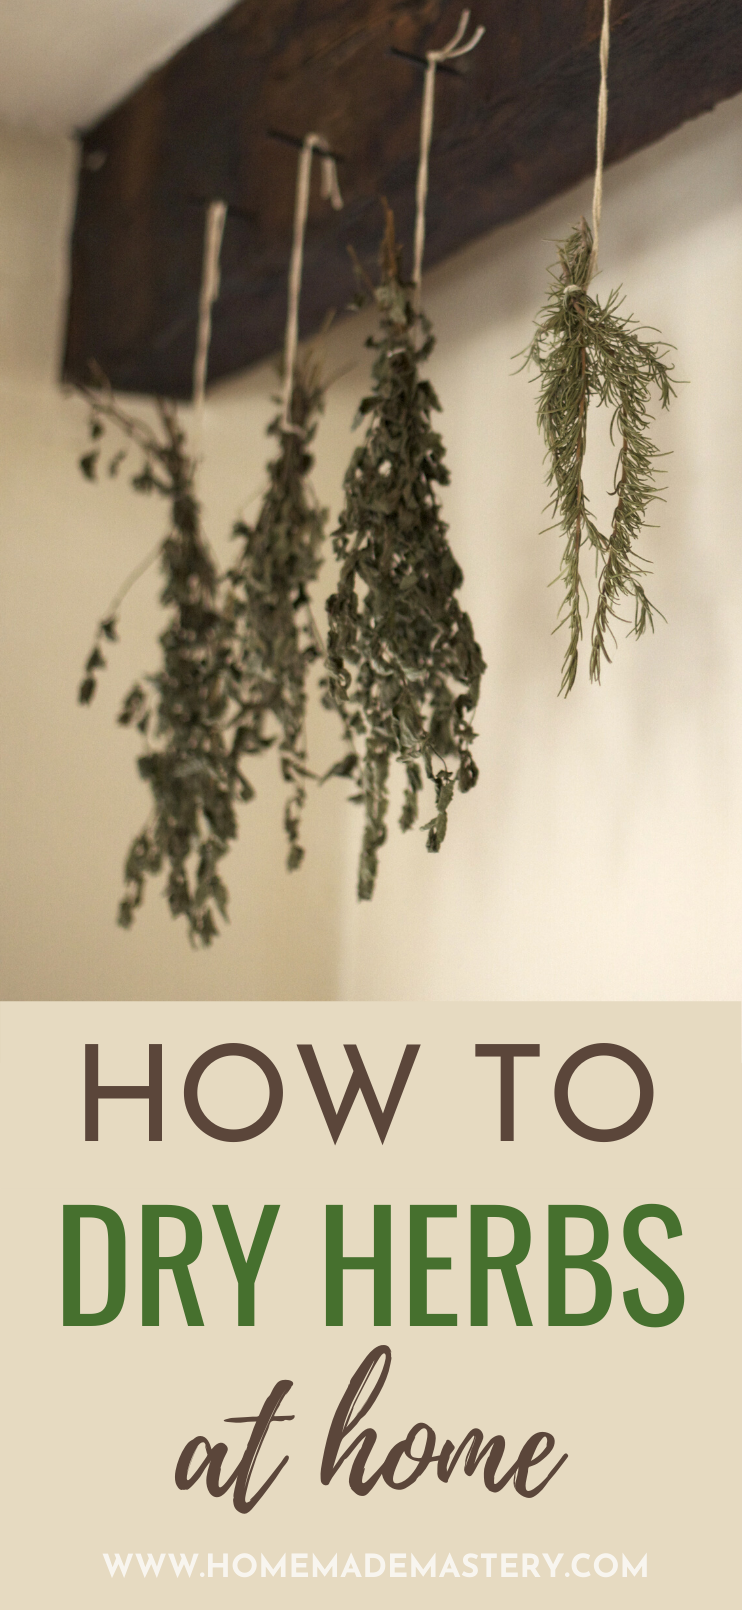 How to dry herbs at home! In this tutorial you'll learn how to dry herbs in the oven and with air drying at home! If you've been growing some herbs in your herb garden for cooking or medicinal purposes (they have amazing healing properties) you need to learn how to preserve them. Learn how to preserve herbs like basil, mint, rosemary, dill and thyme by drying herbs at home the right way.